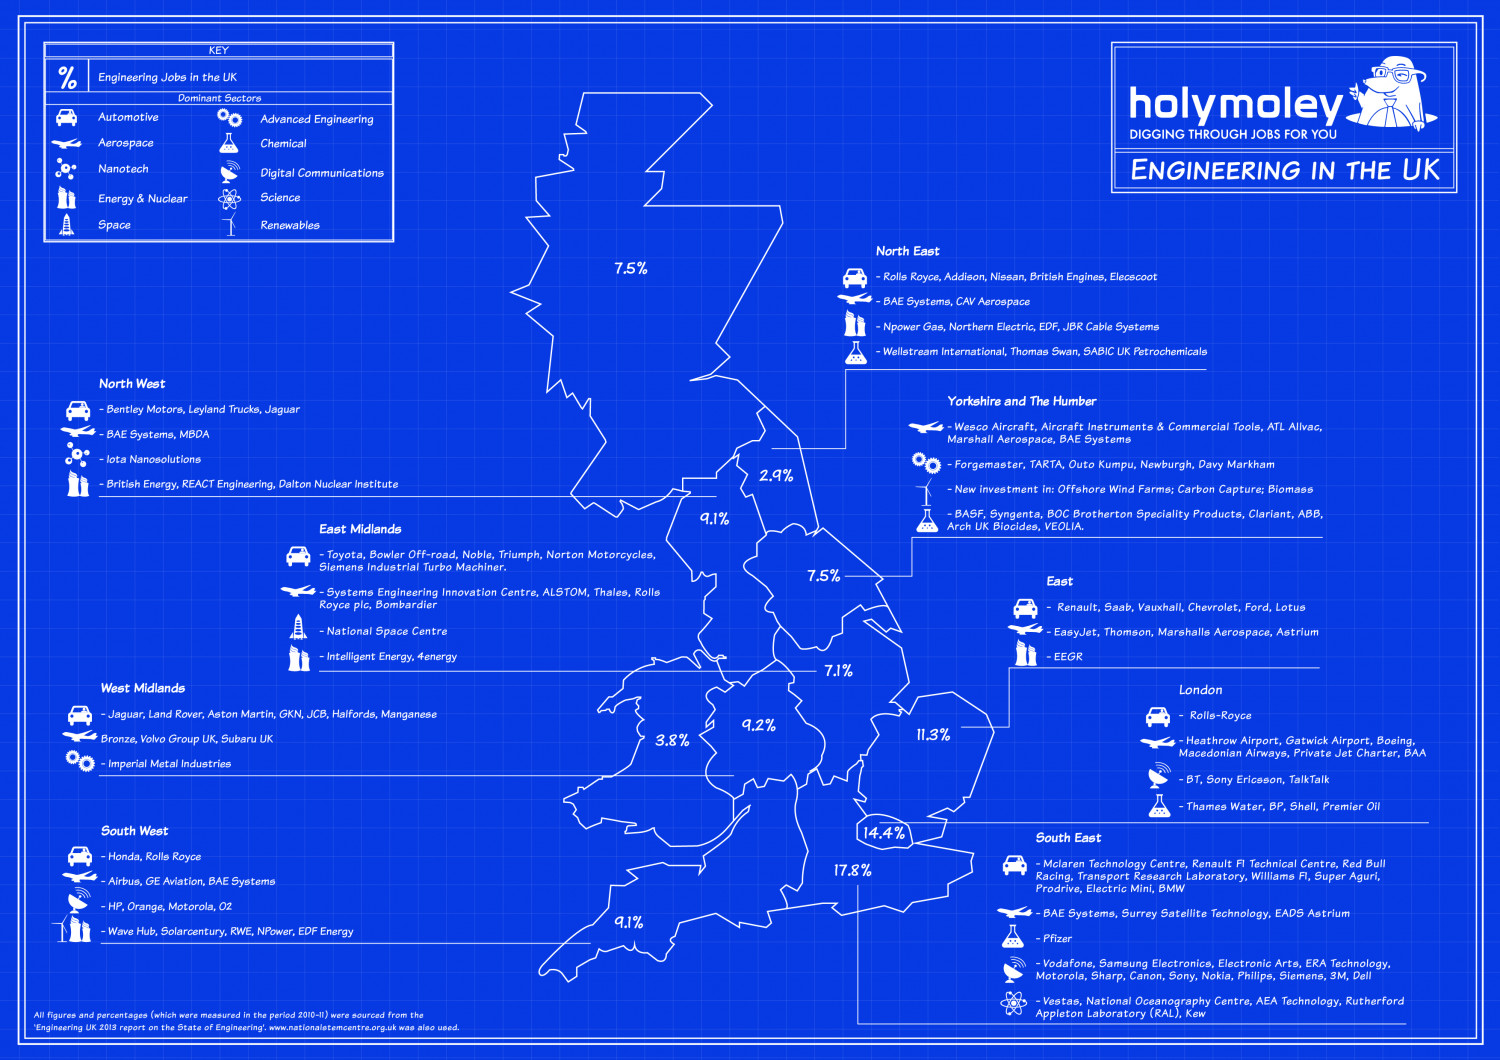 Engineering in the UK Infographic